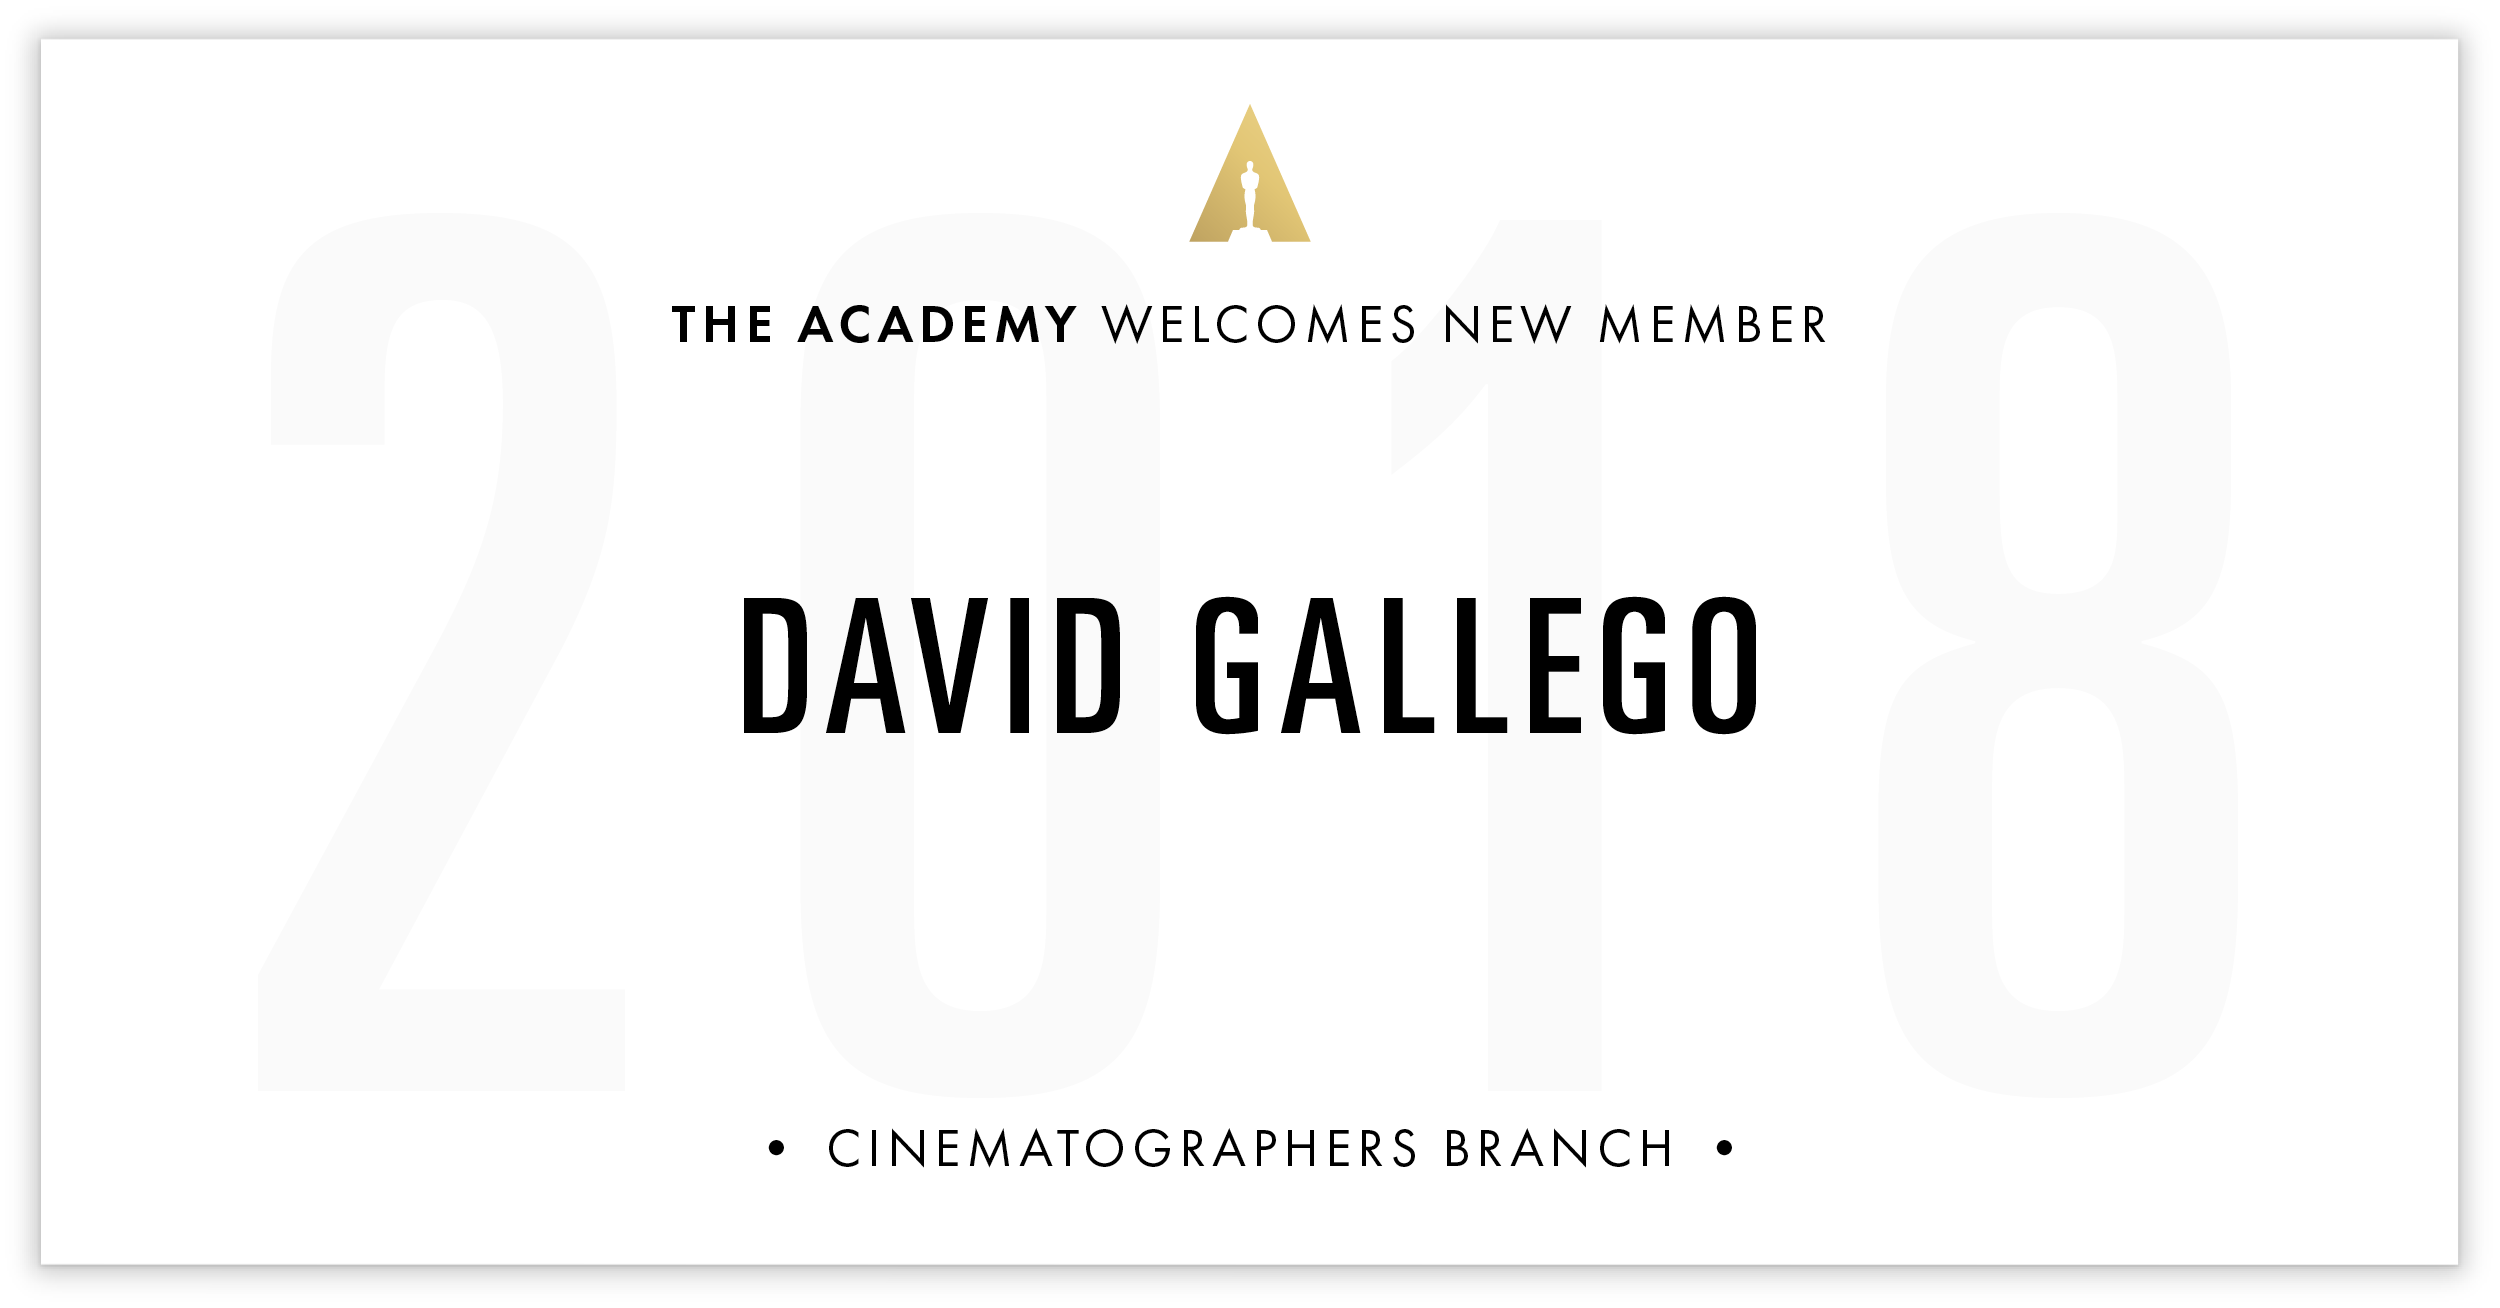 David Gallego is invited!